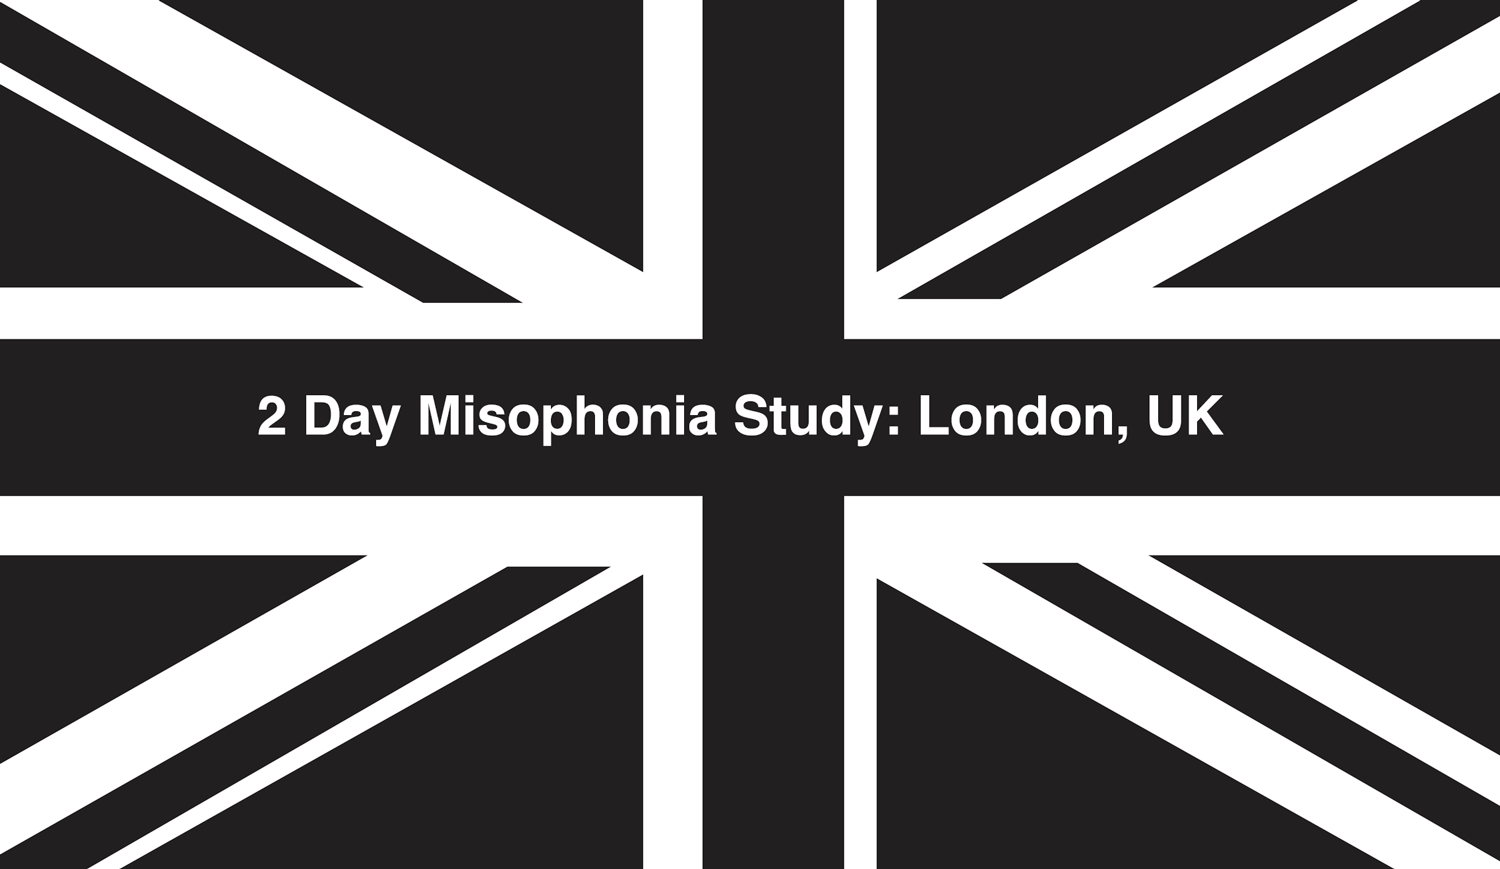 Volunteers Wanted for London (UK) Misophonia Study